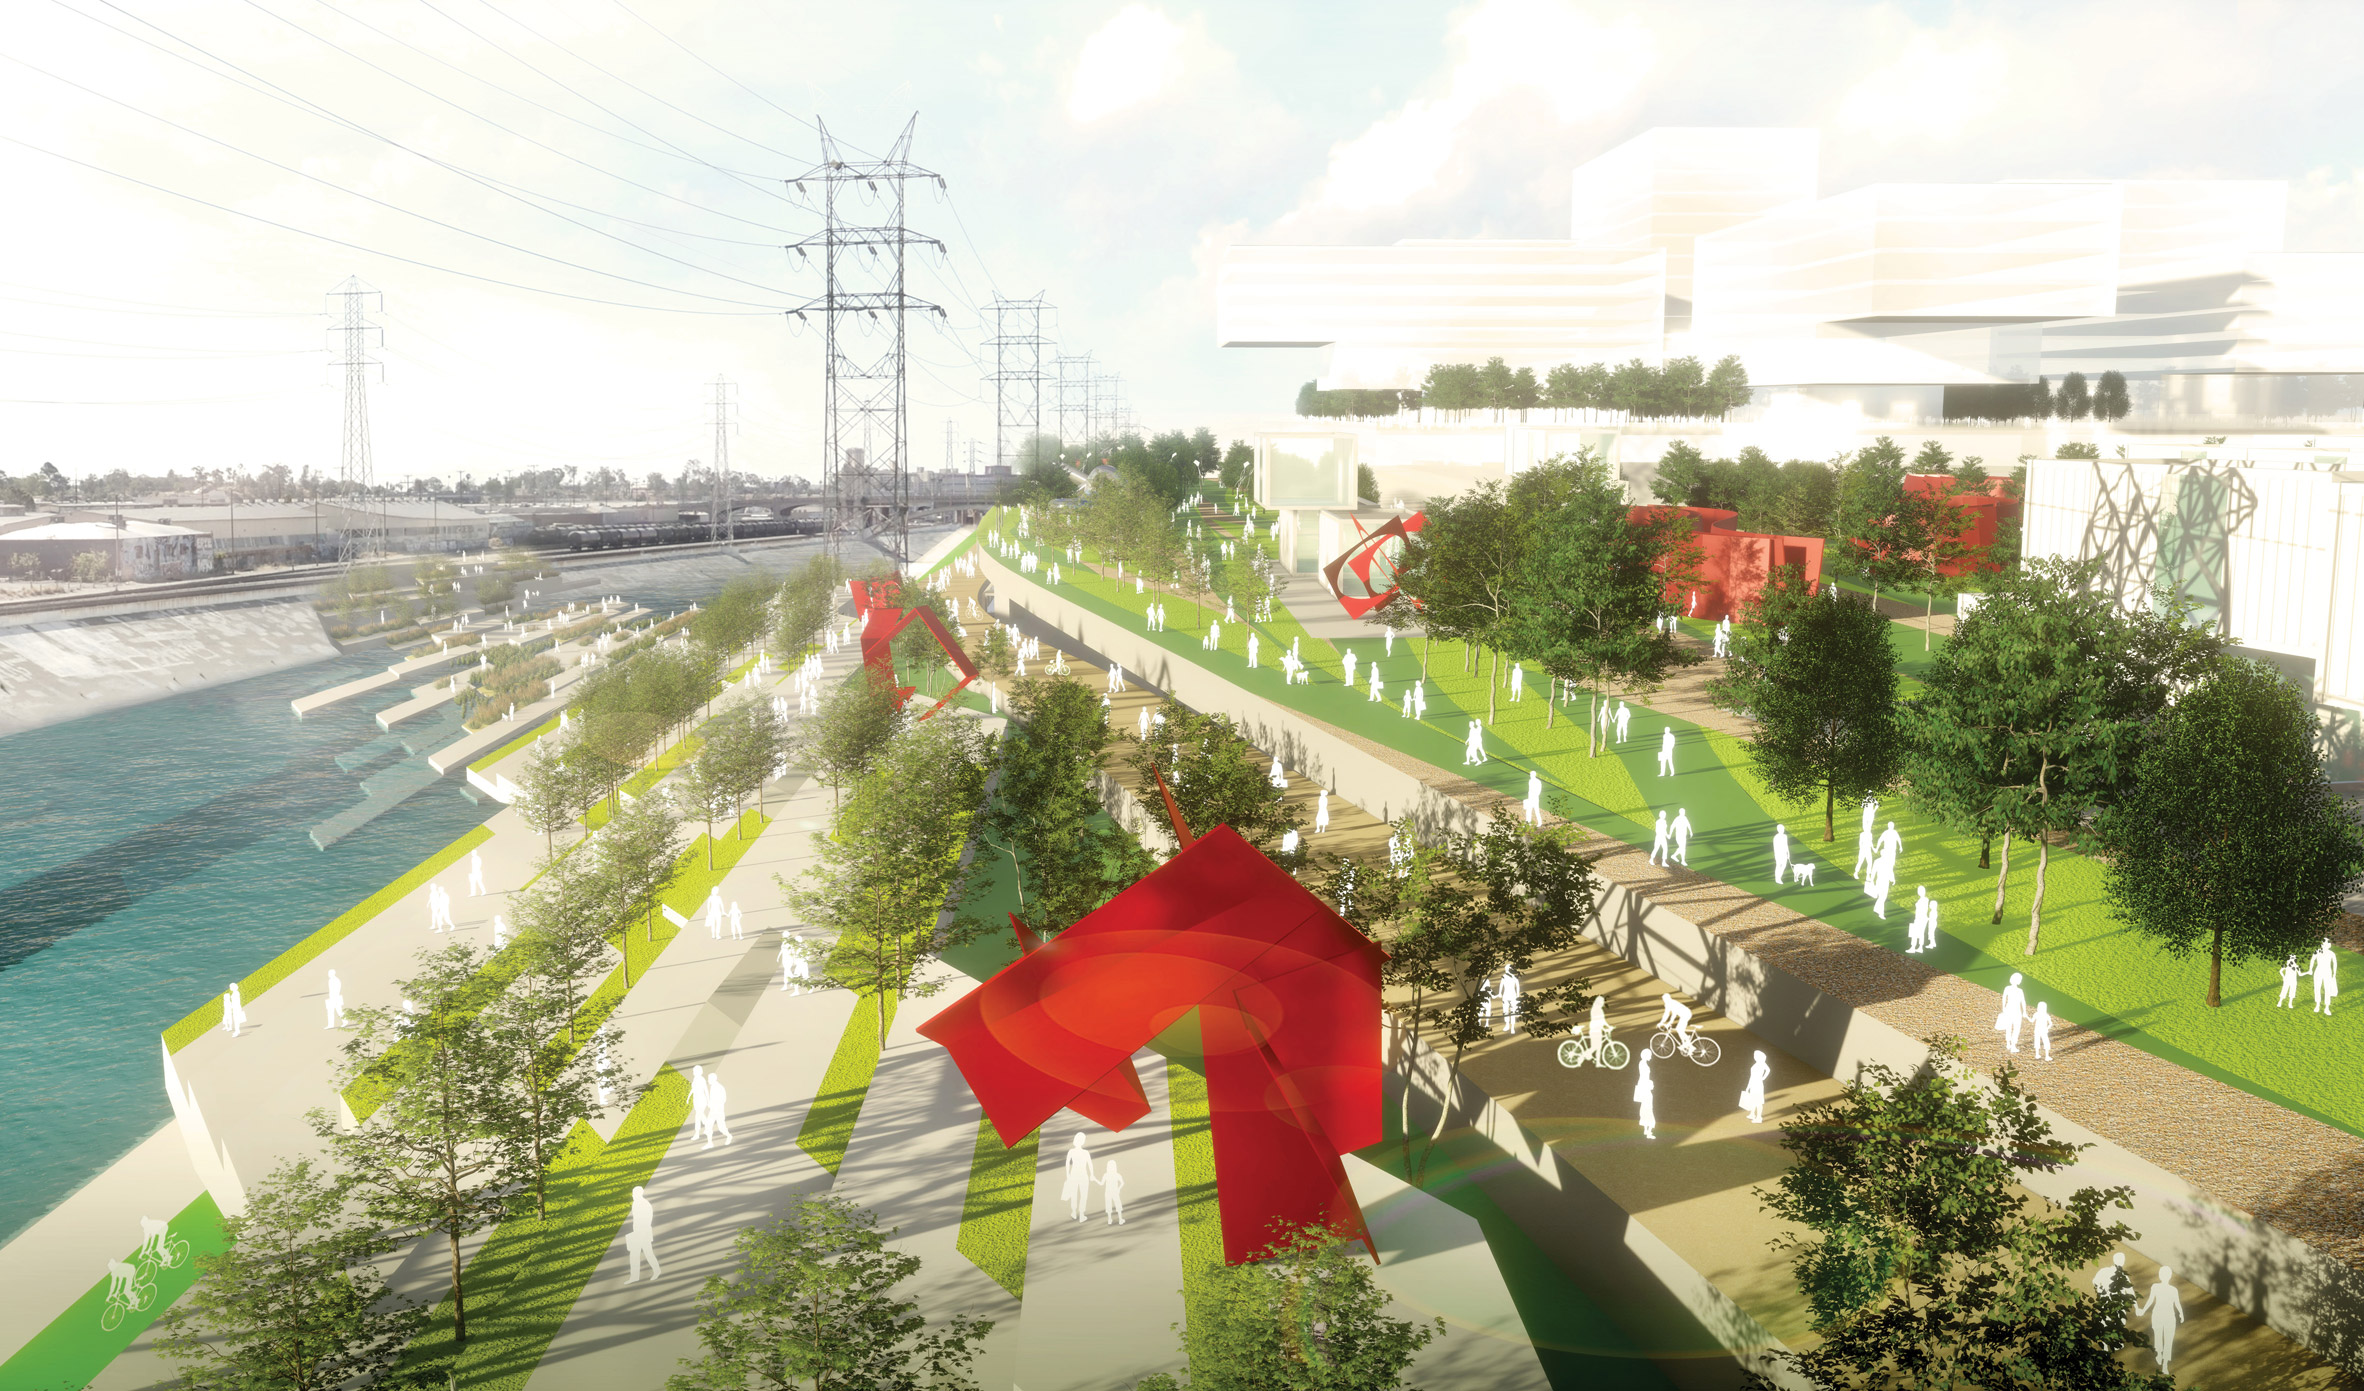 Architects' proposals to revitalise the Los Angeles River